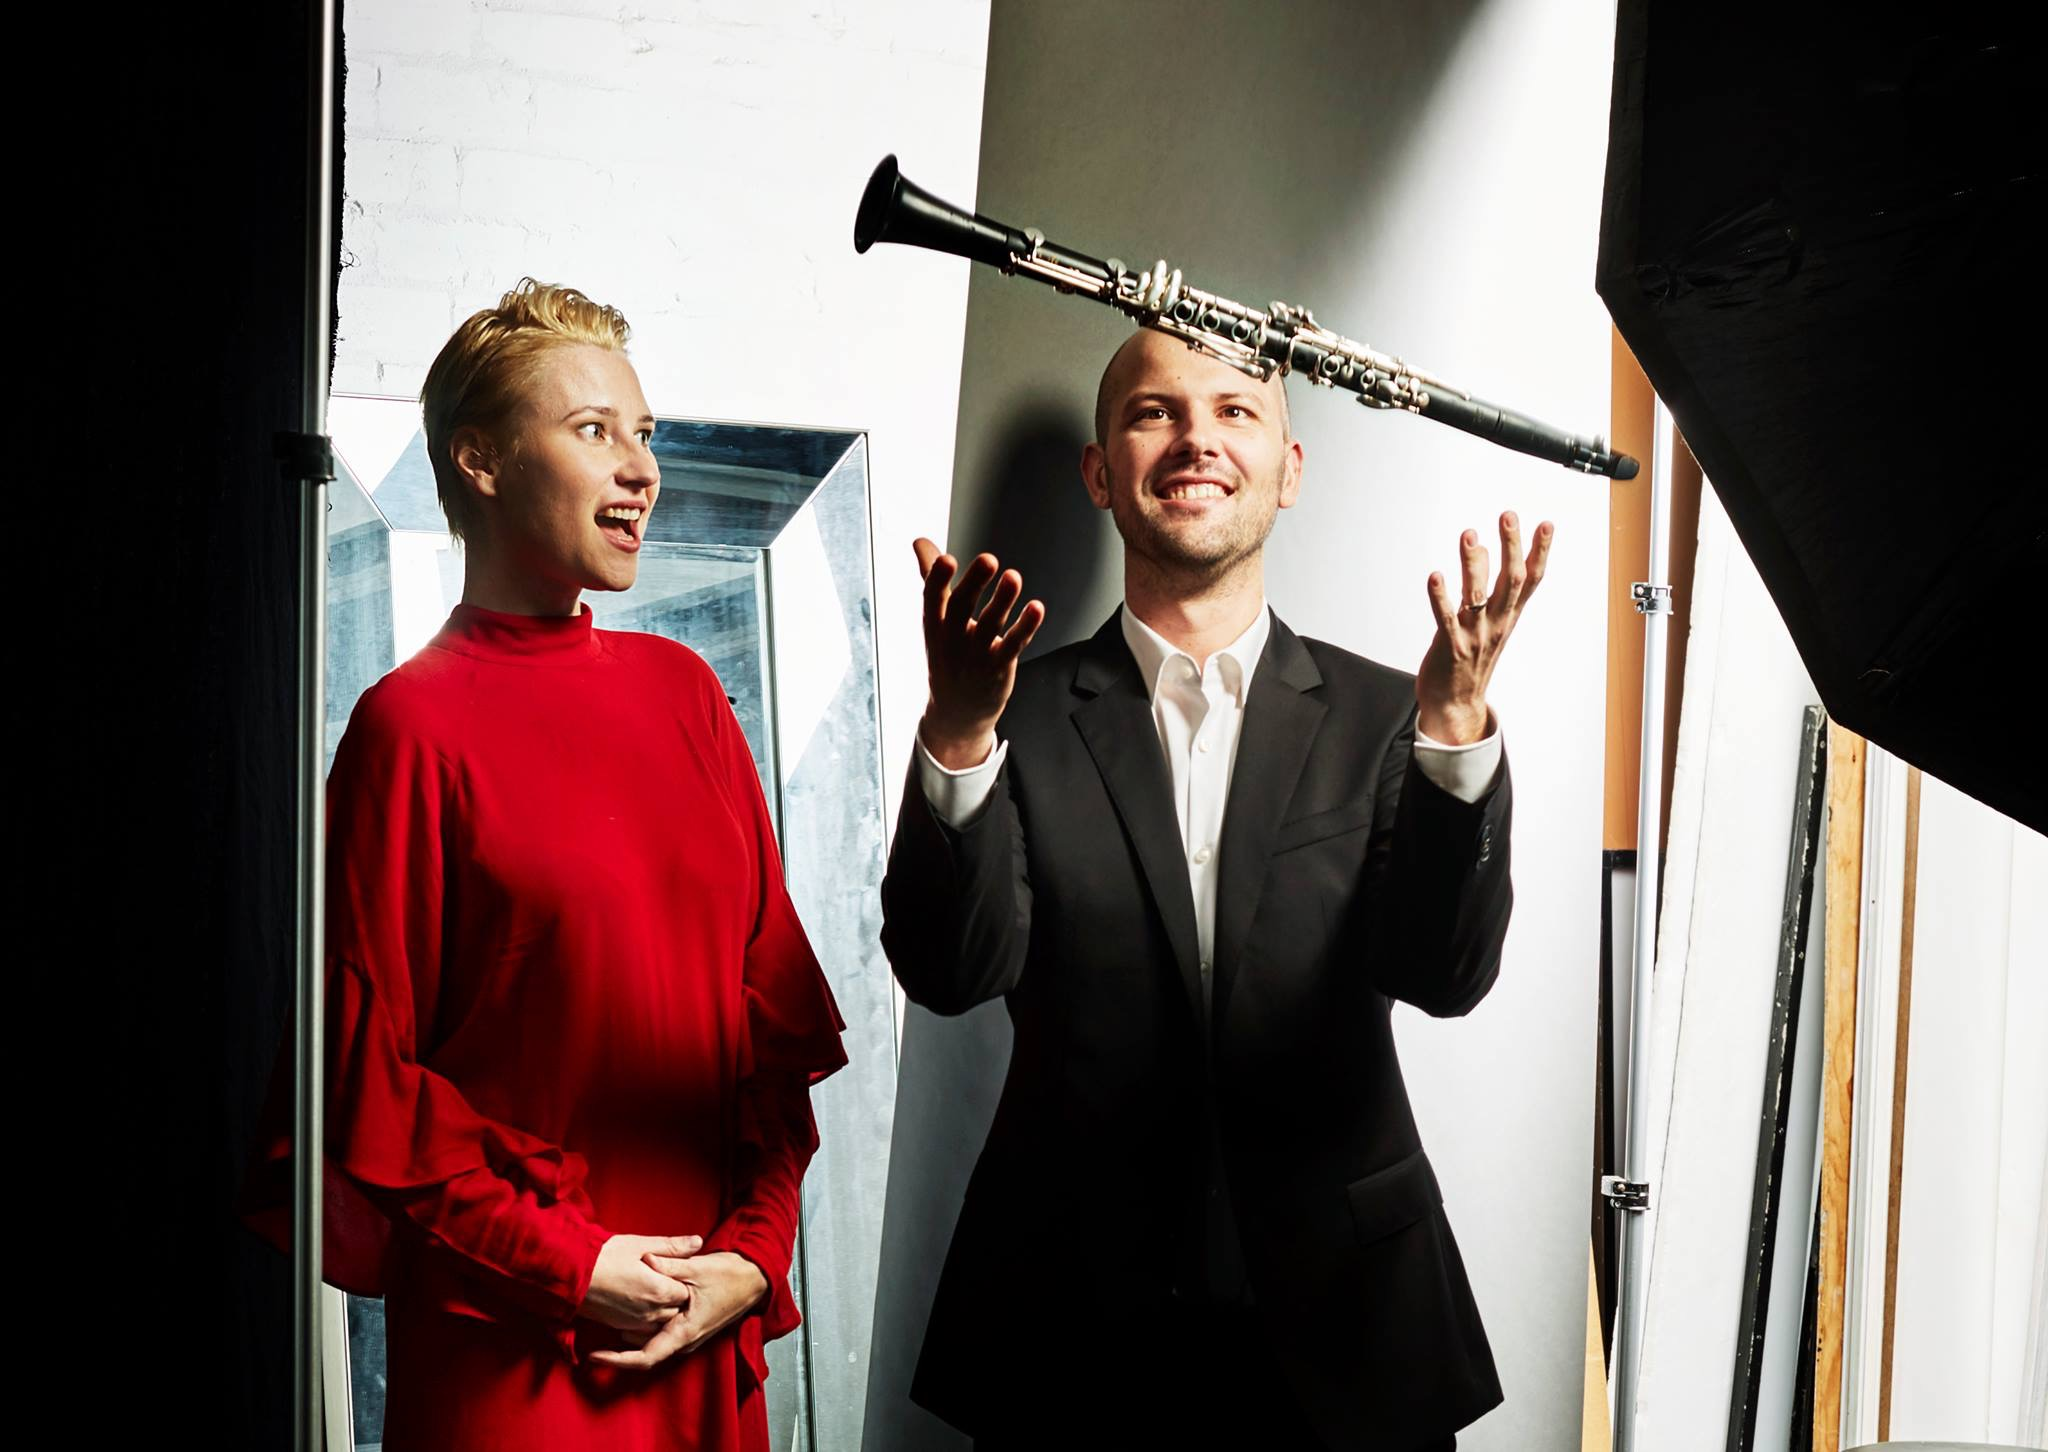 - David's new party trick (throwing the clarinet). Don't worry, he caught it !